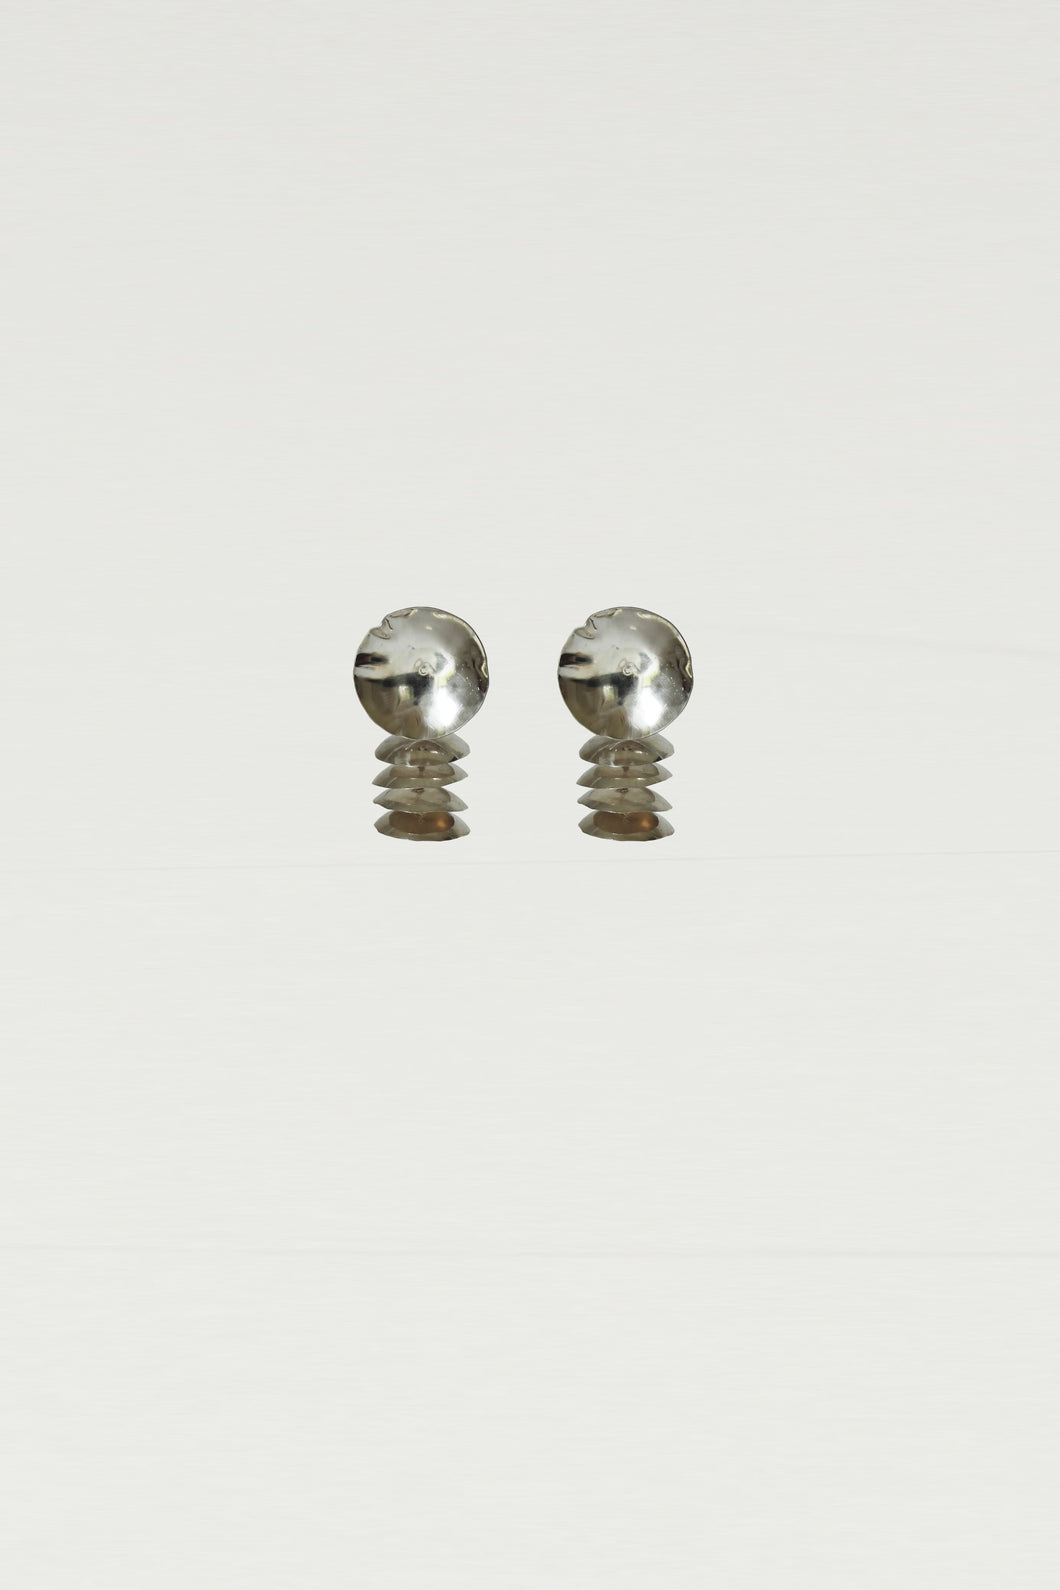 Series 6, earring 4, silver